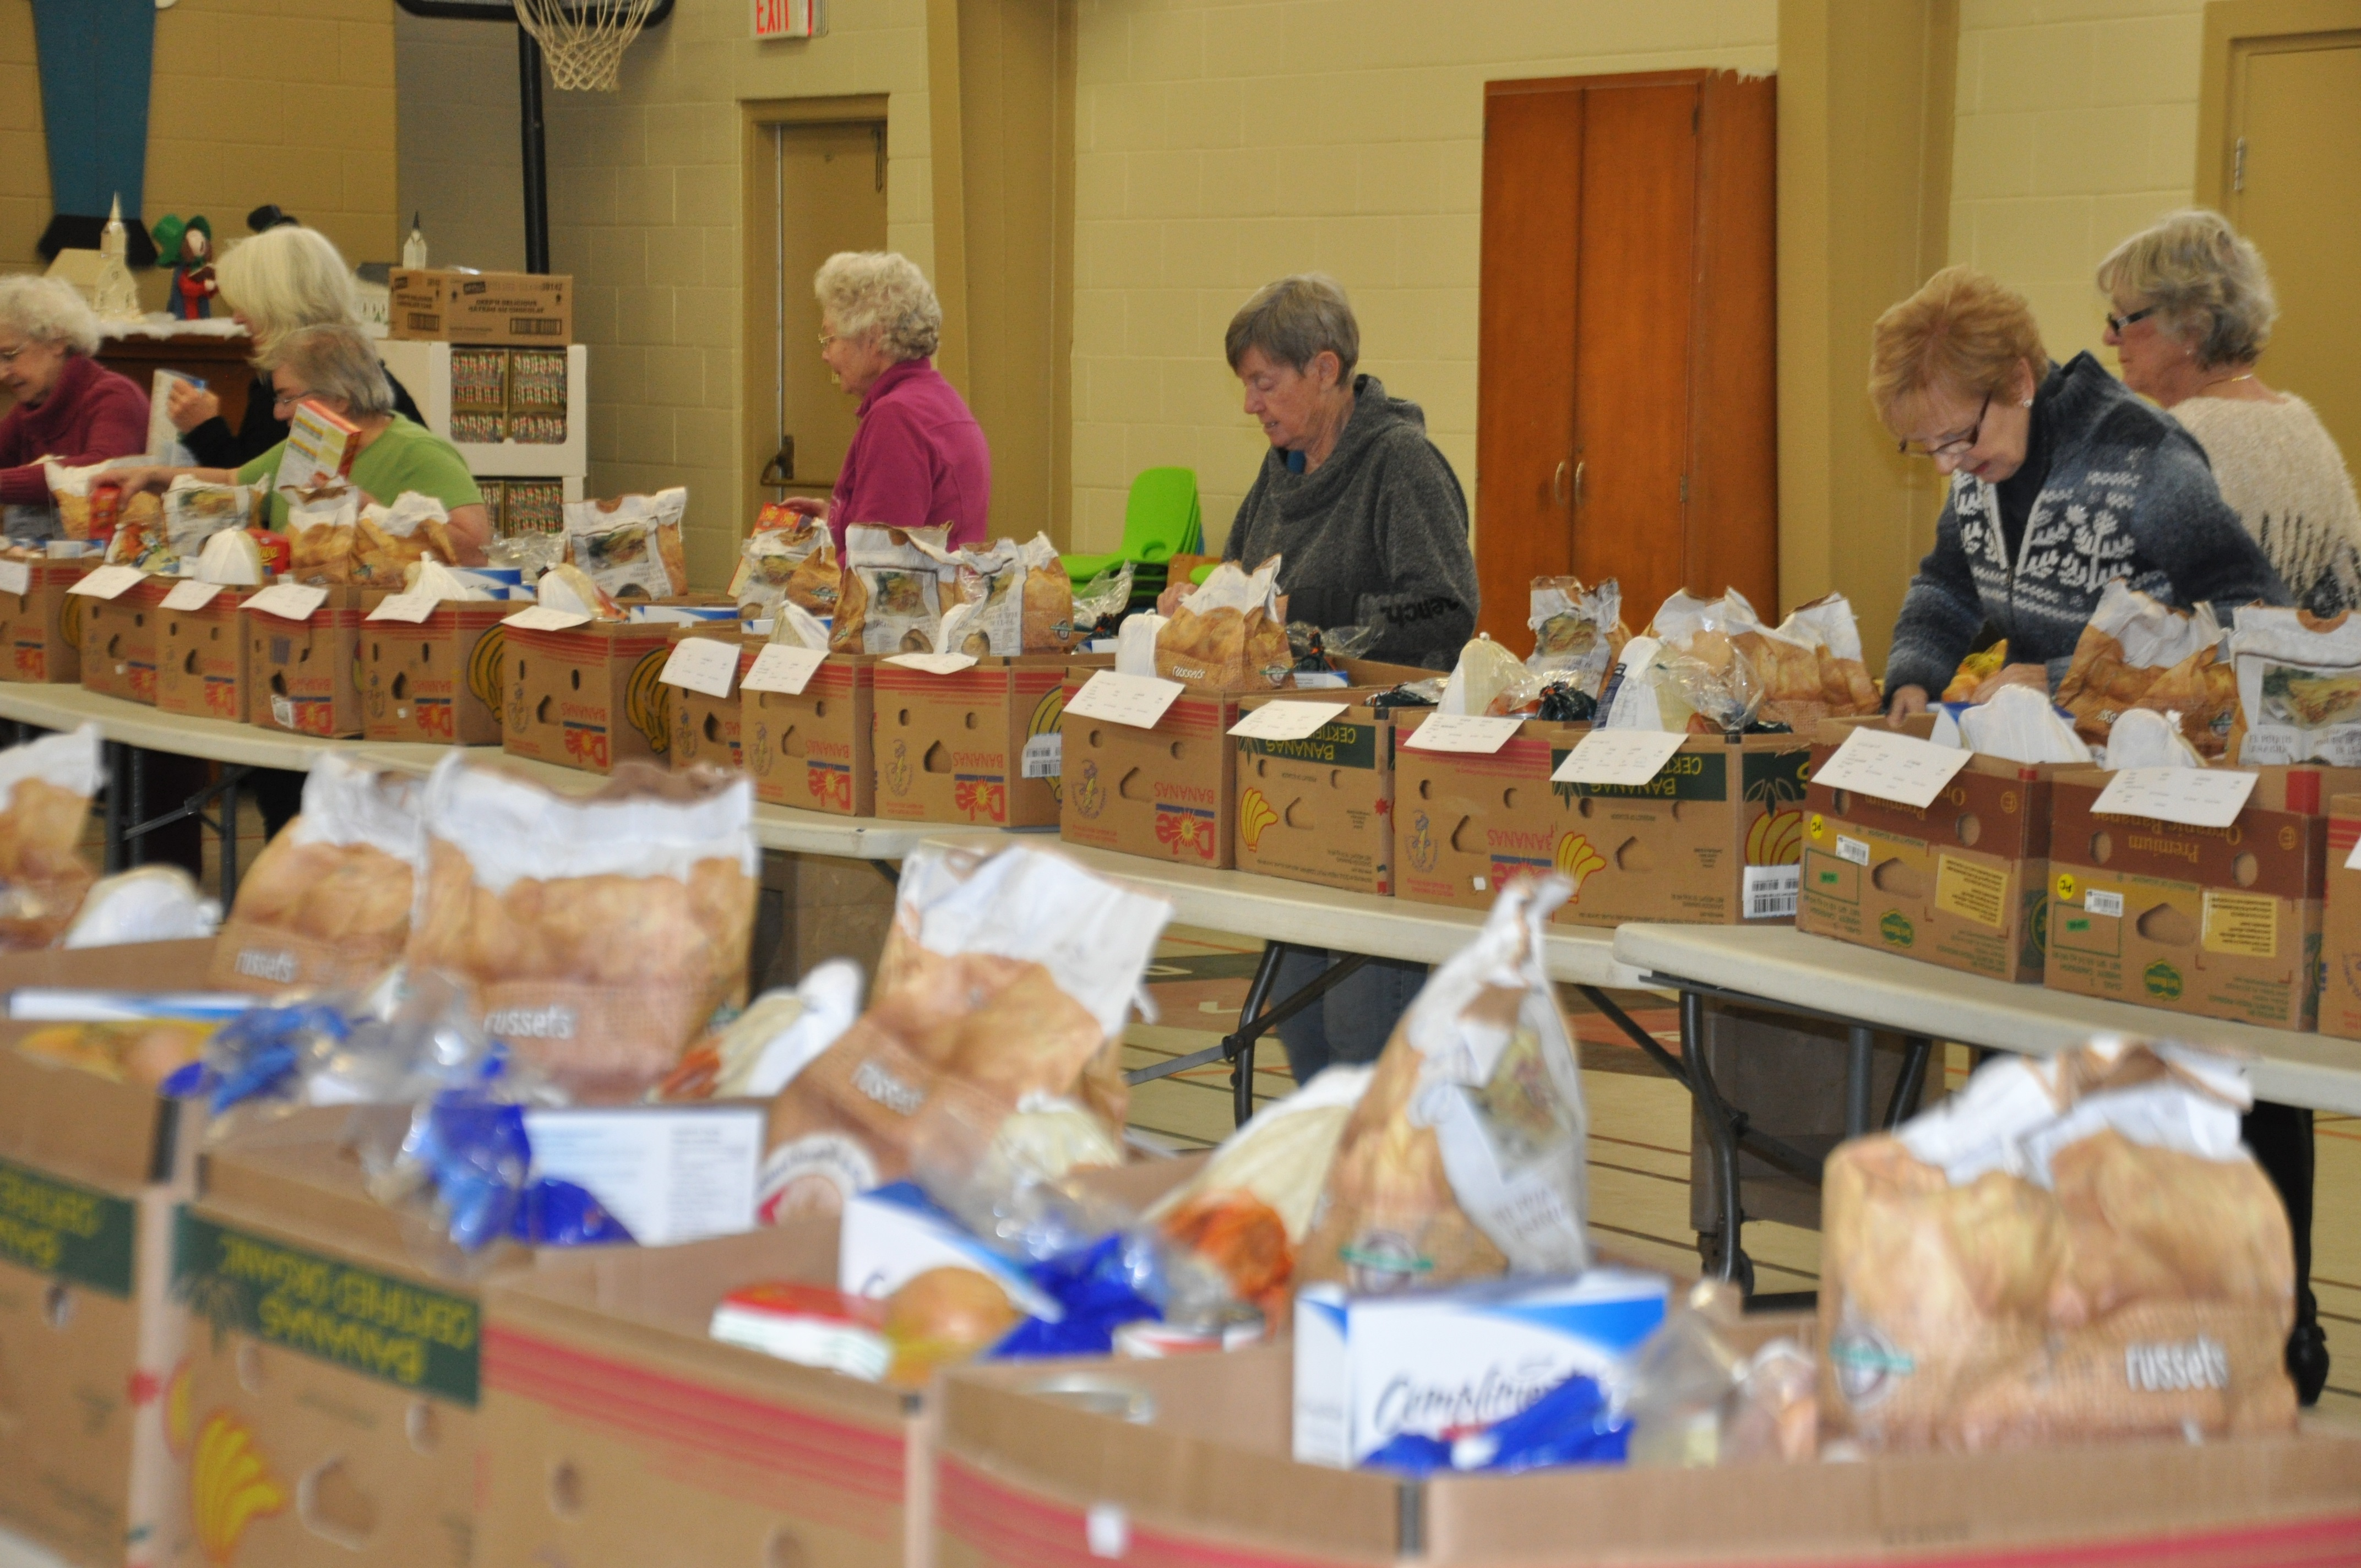 packing Christmas food baskets at Crossroads, 2017